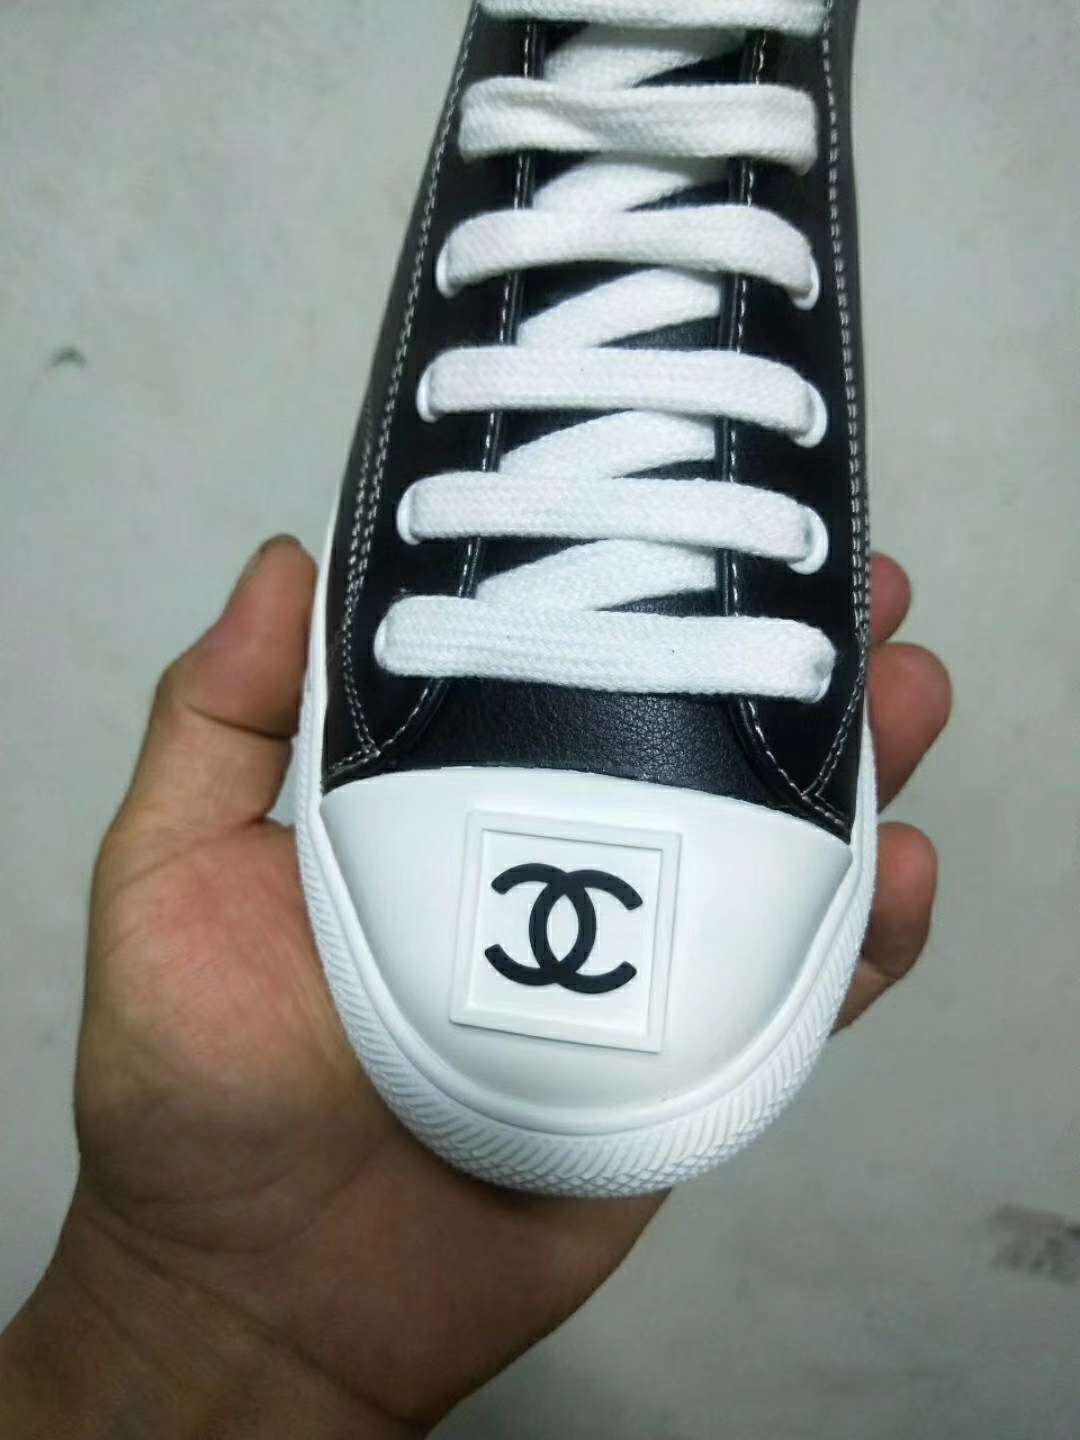 2019 NEW Chanel Real leather shoes 1026 black white